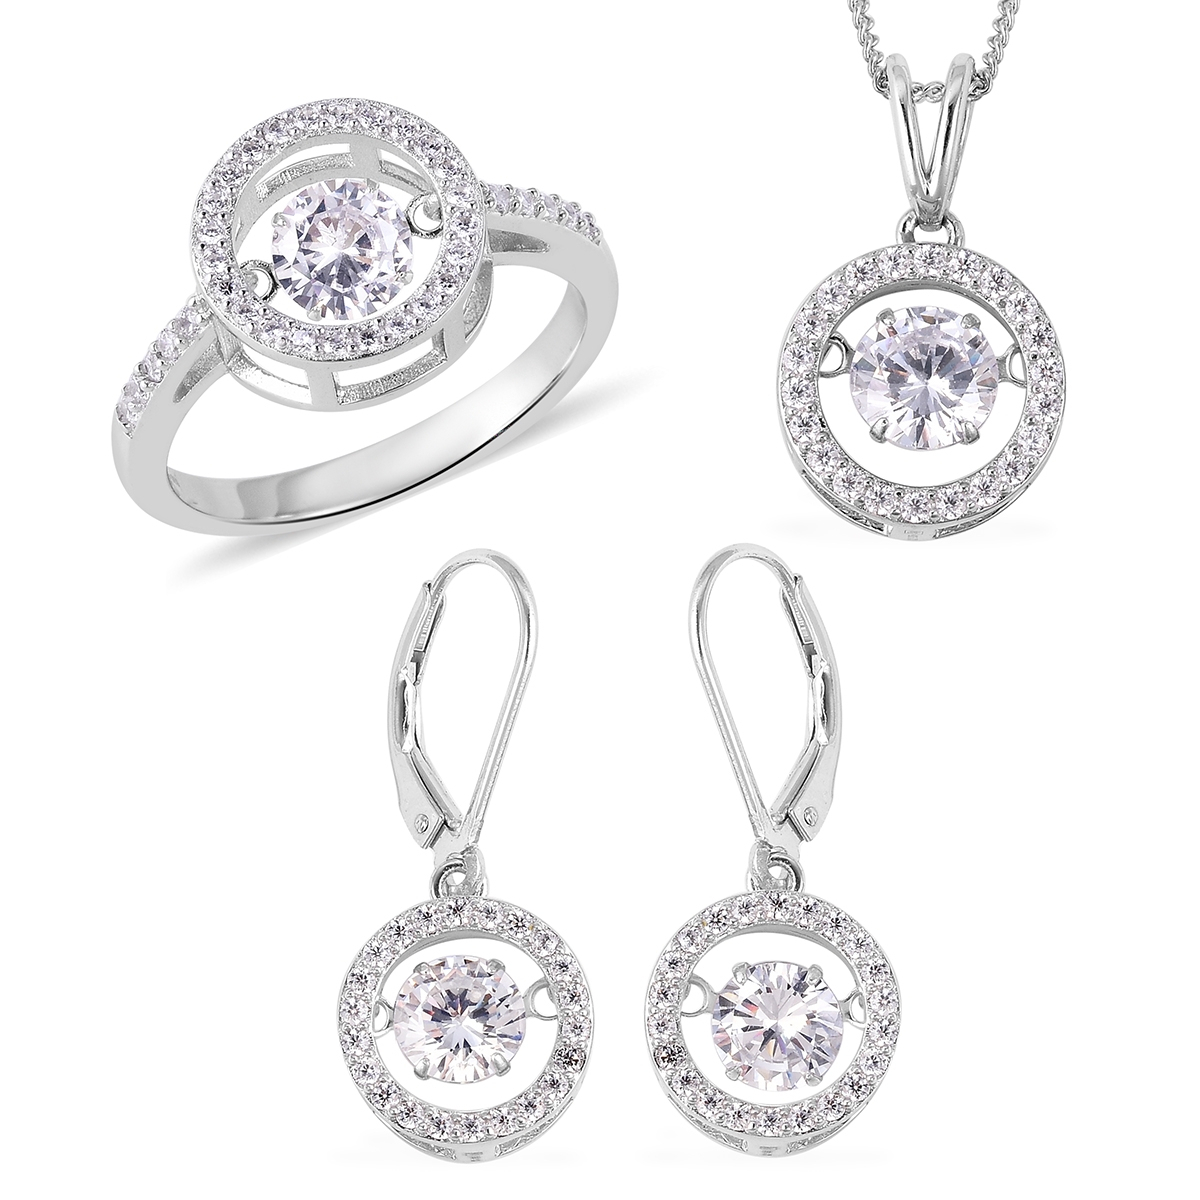 Lustro Stella Dancing Cz Halo Set Earrings, Ring (Size 6) And Pendant  Necklace (18 In) In Sterling Silver  (View 17 of 25)